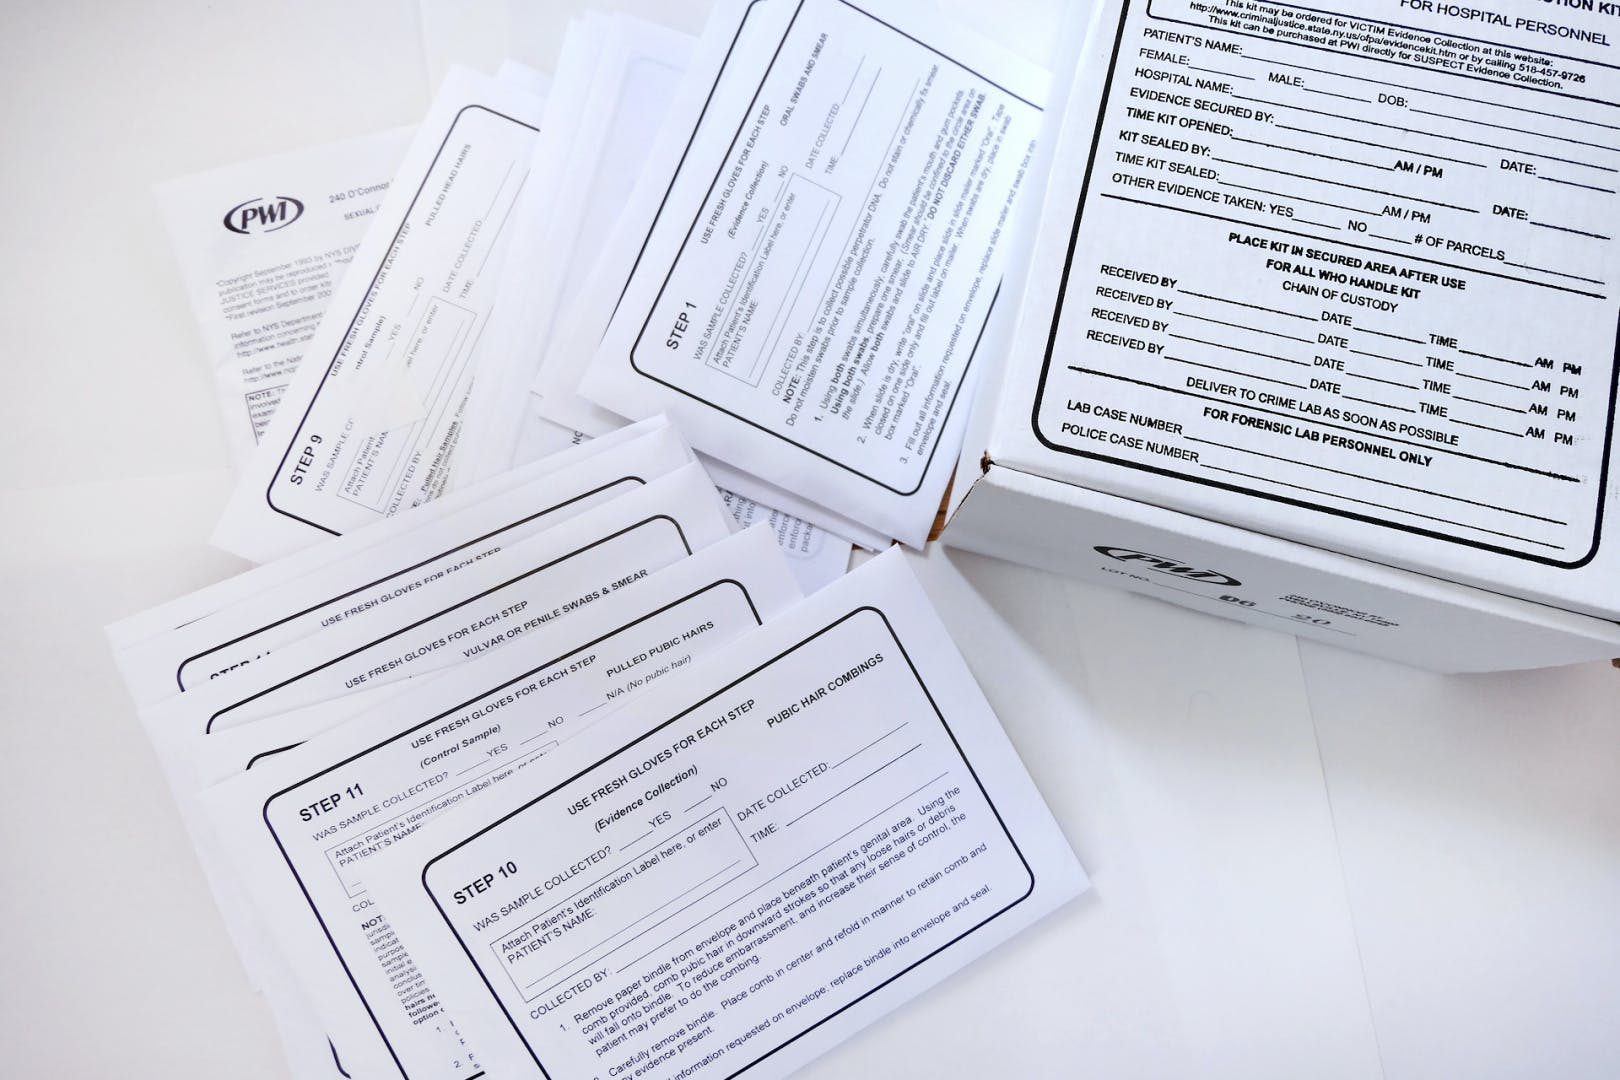 Example of an existing rape kit